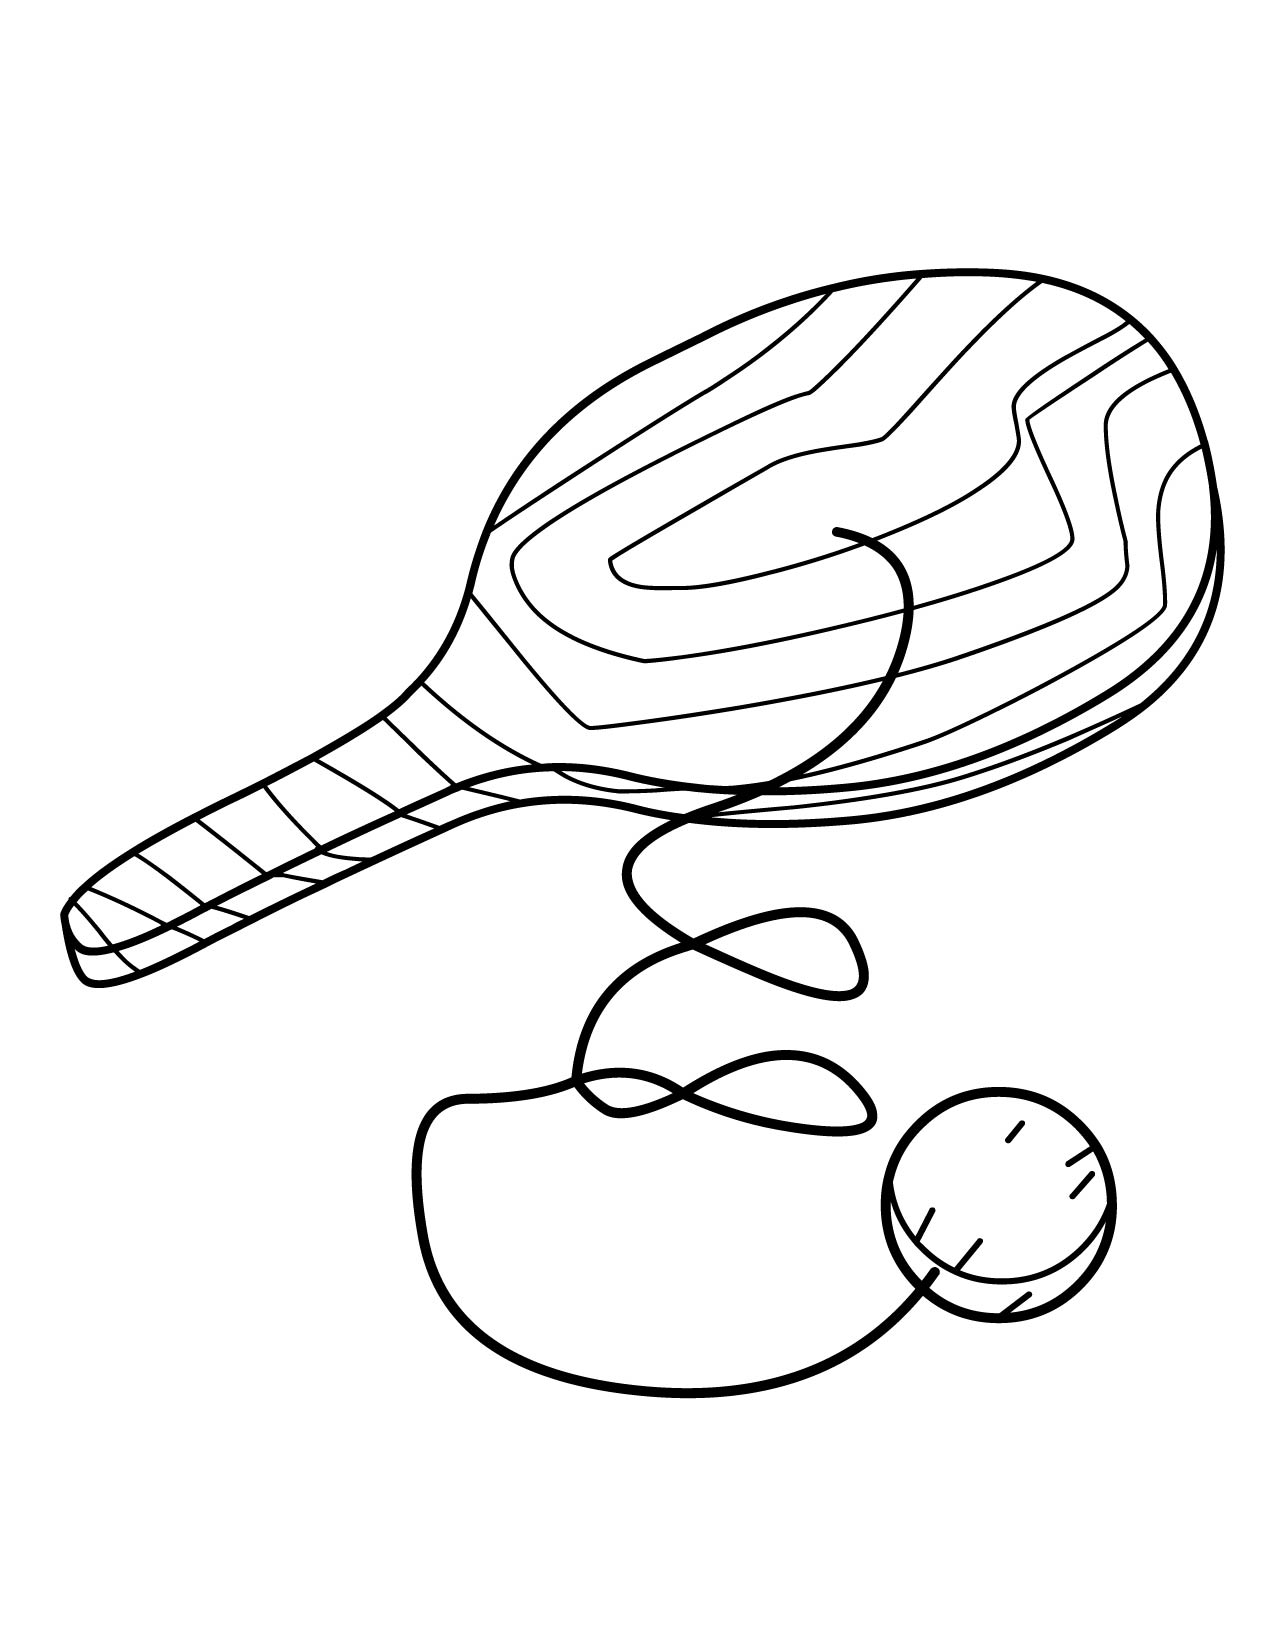 paddle ball coloring page handipoints